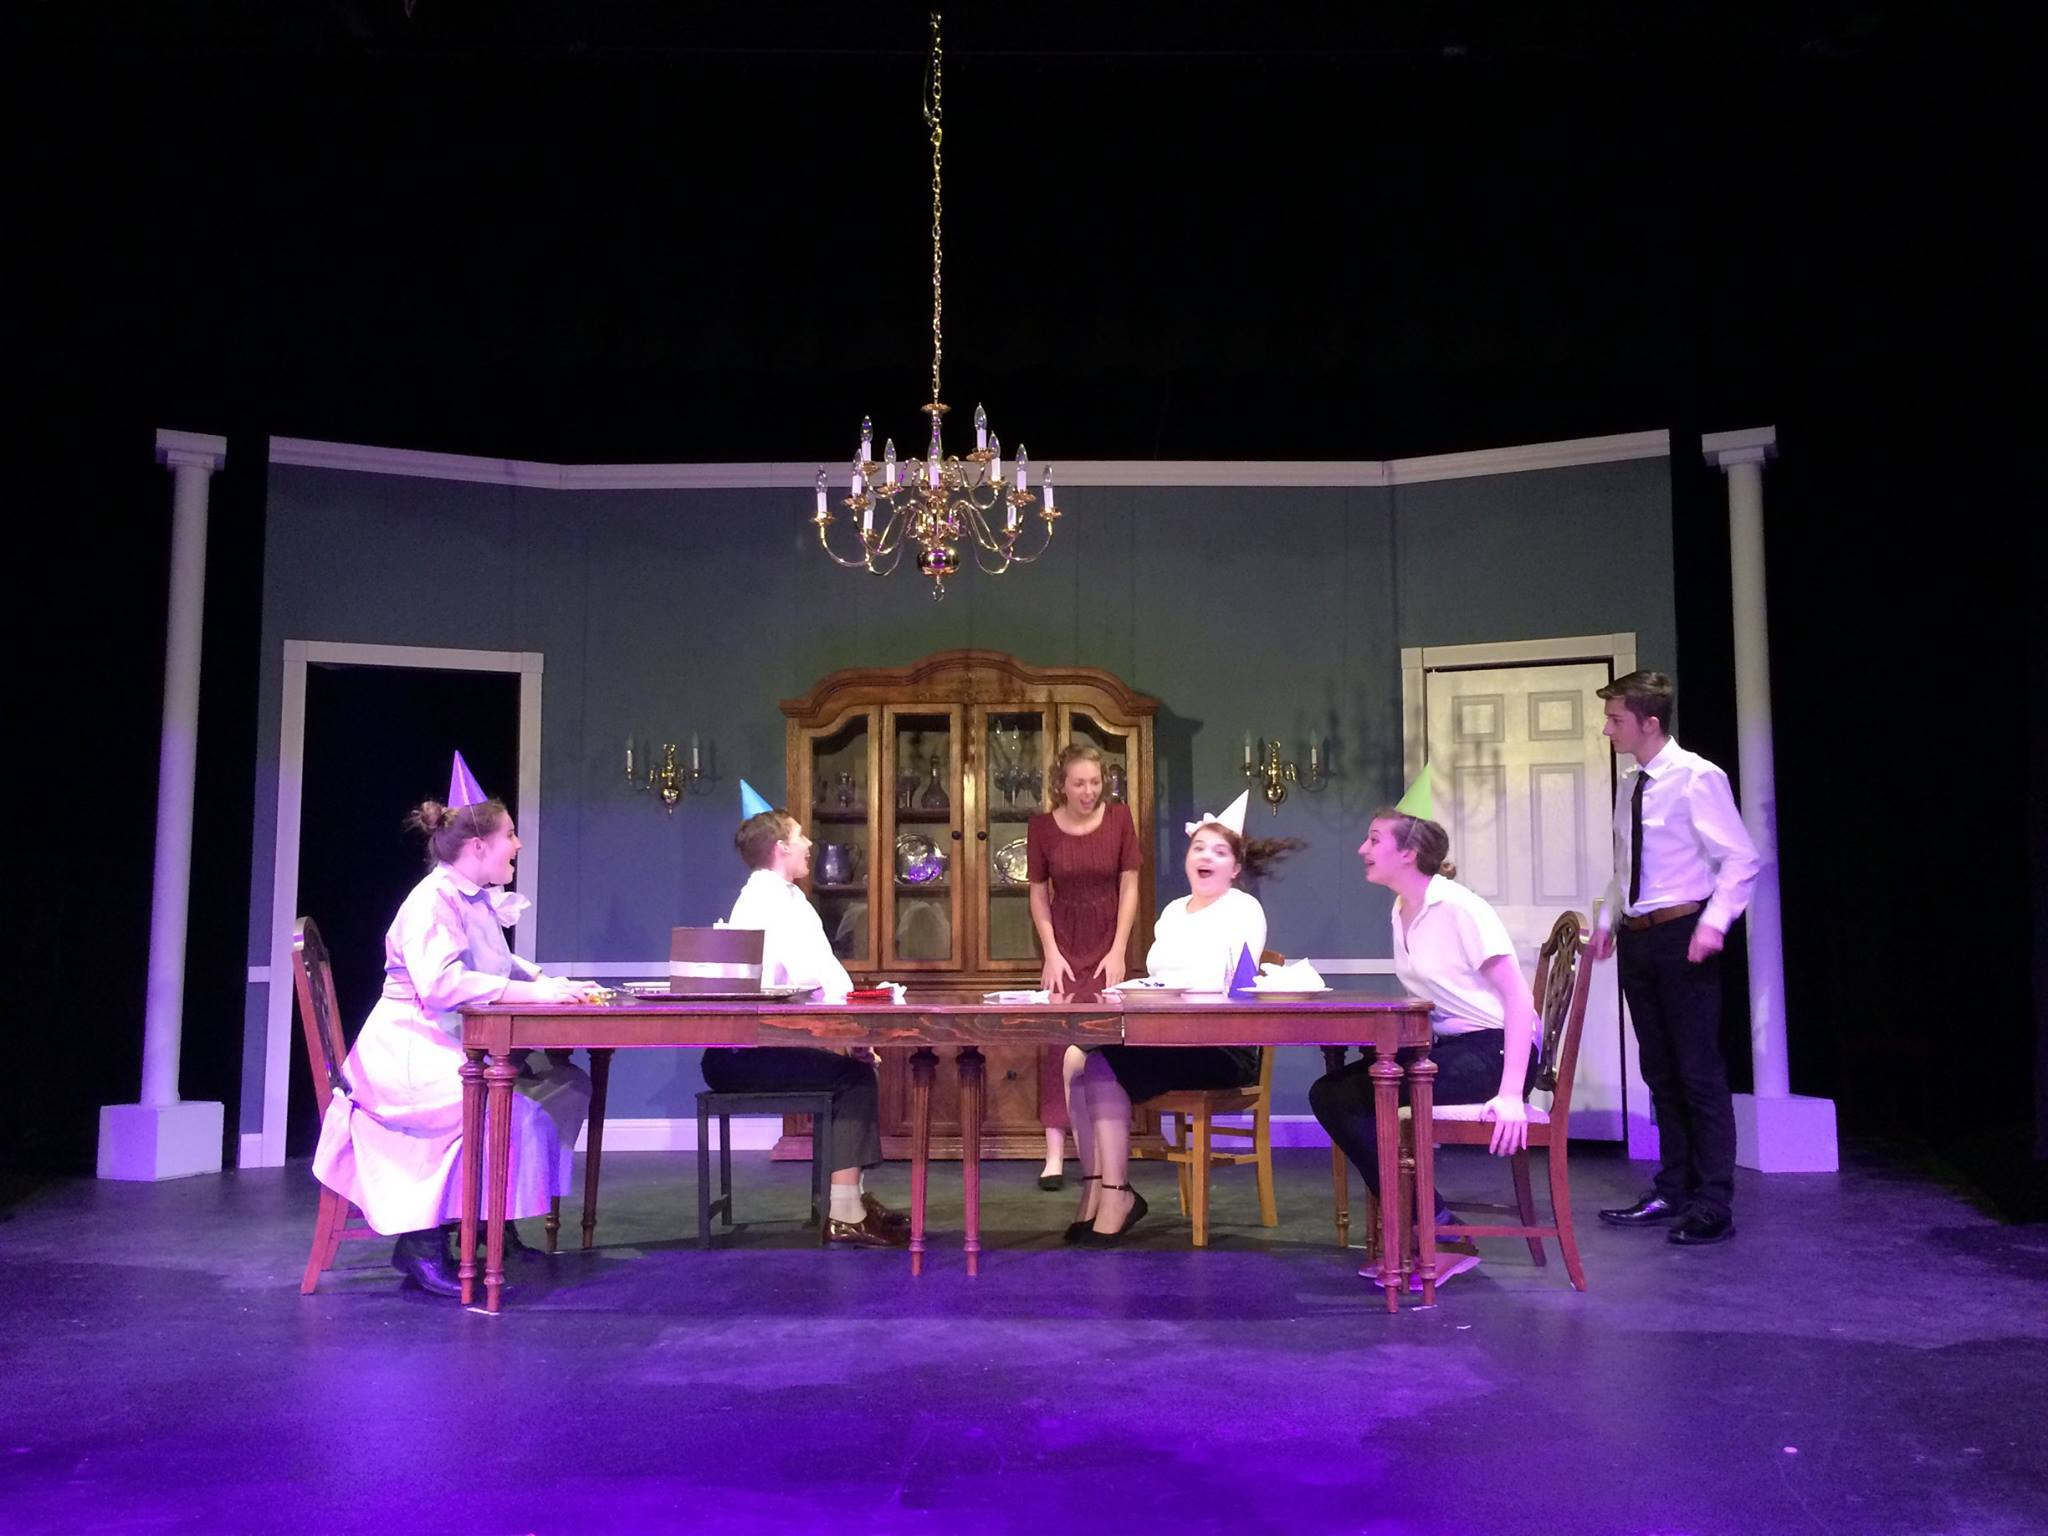 La center high school theatre presents the dining room la center school district - Dining room play ...